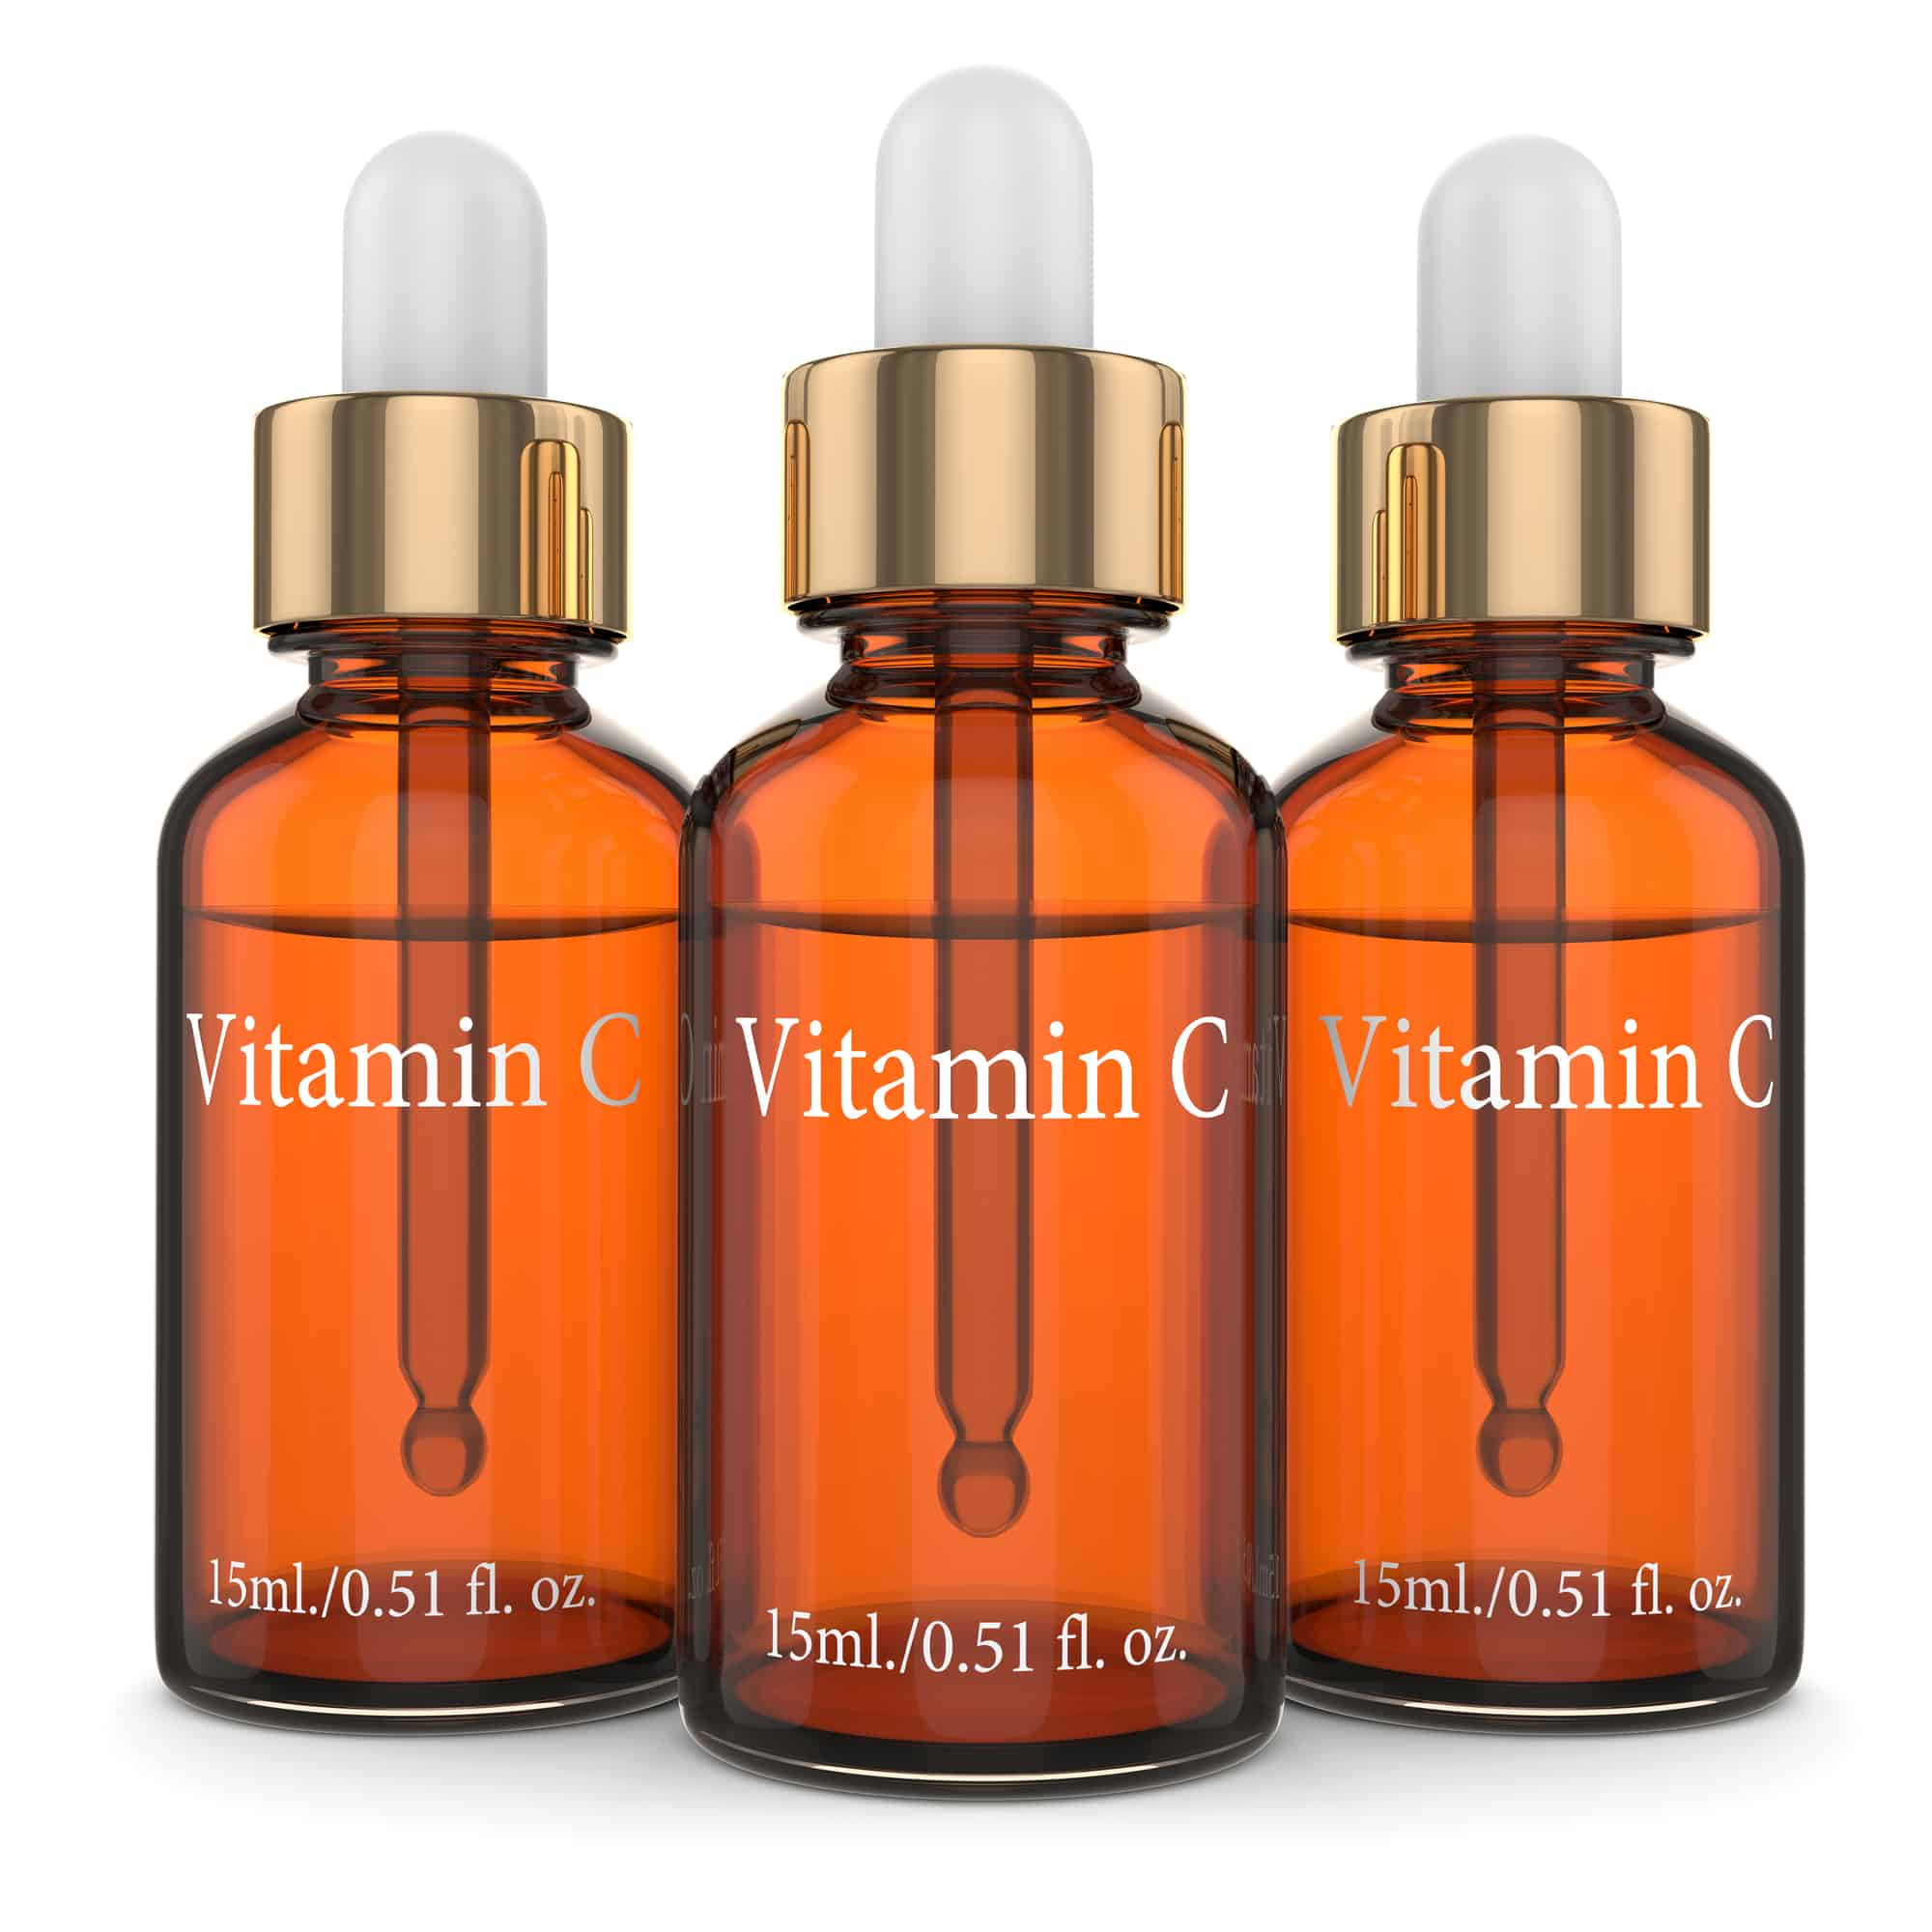 3d render of vitamin C bottles with dropper over white background